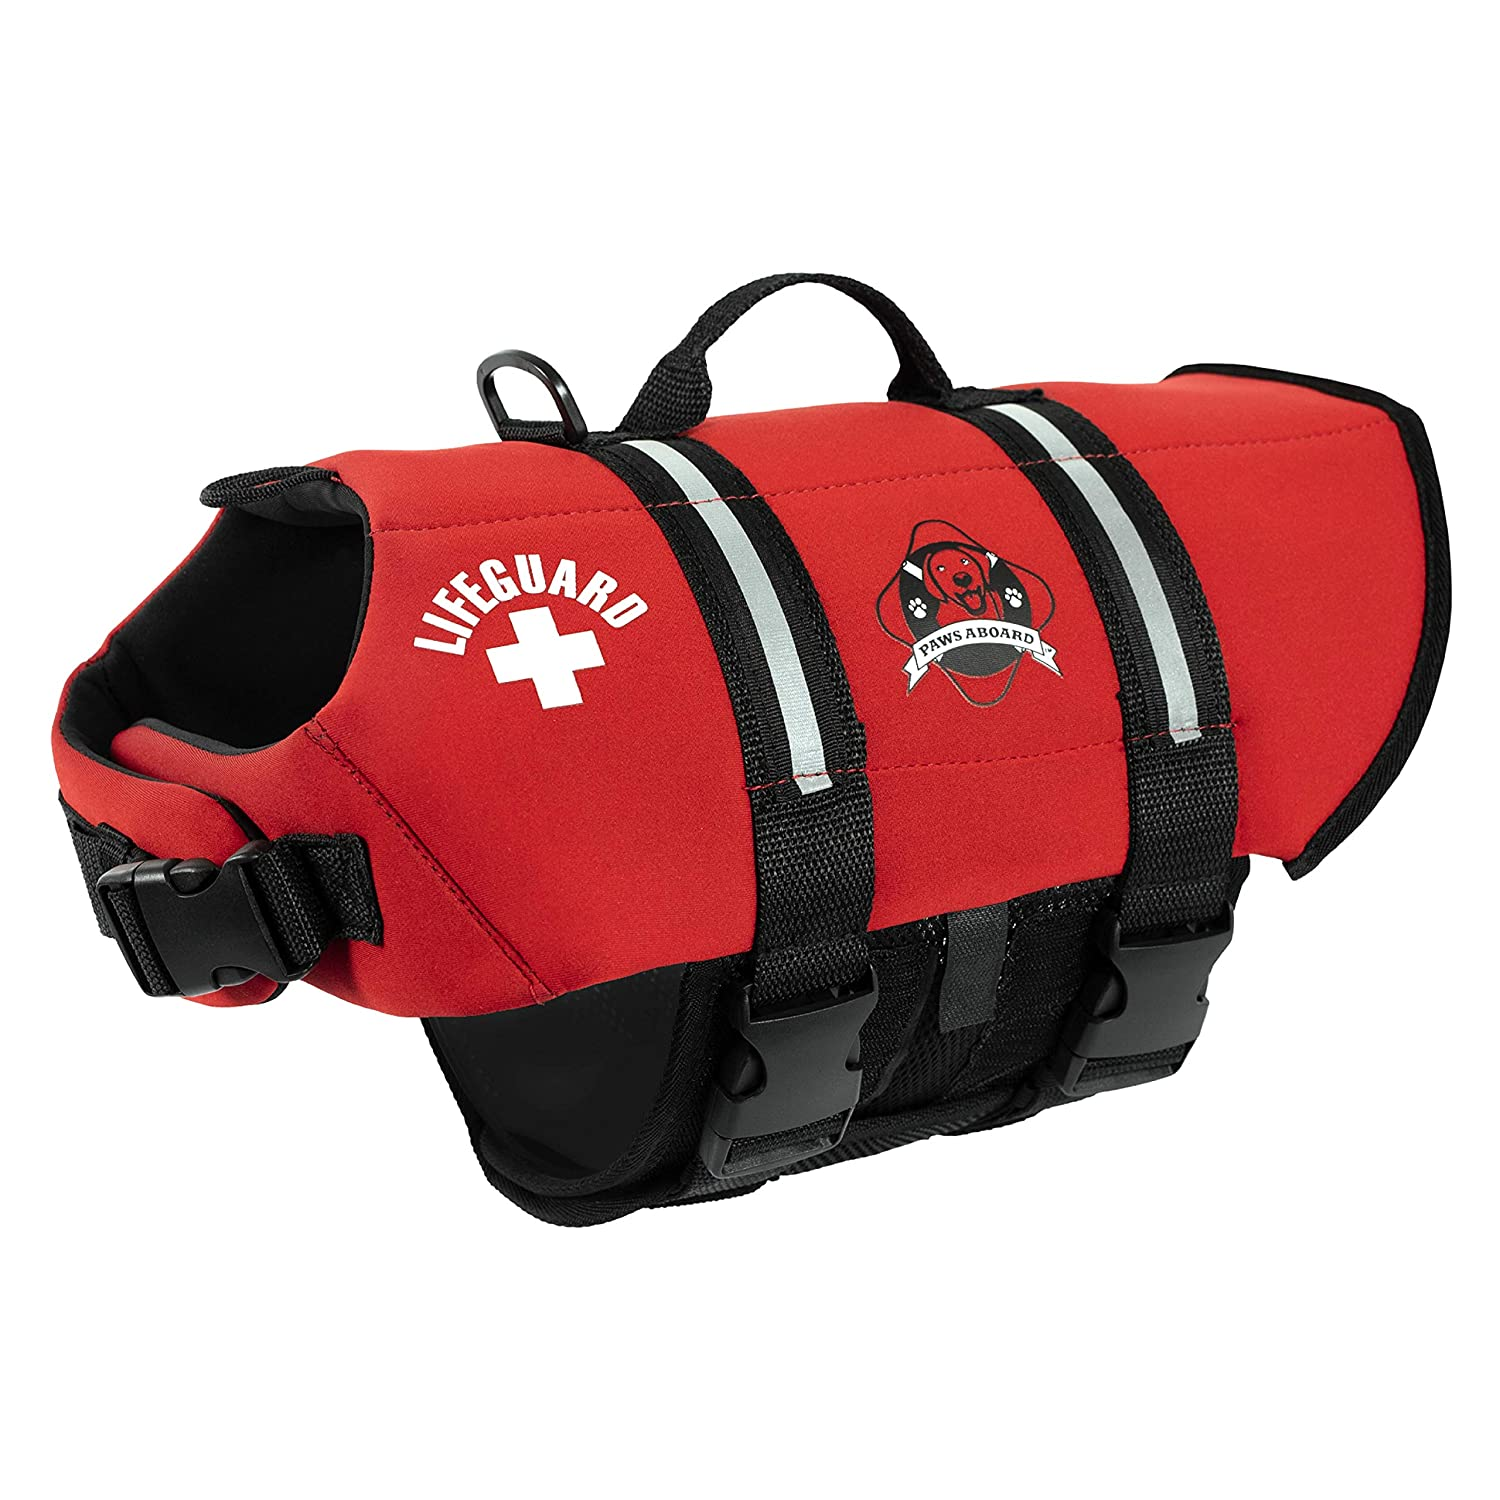 Fido Pet Products Doggy Life Jacket, Large, Red